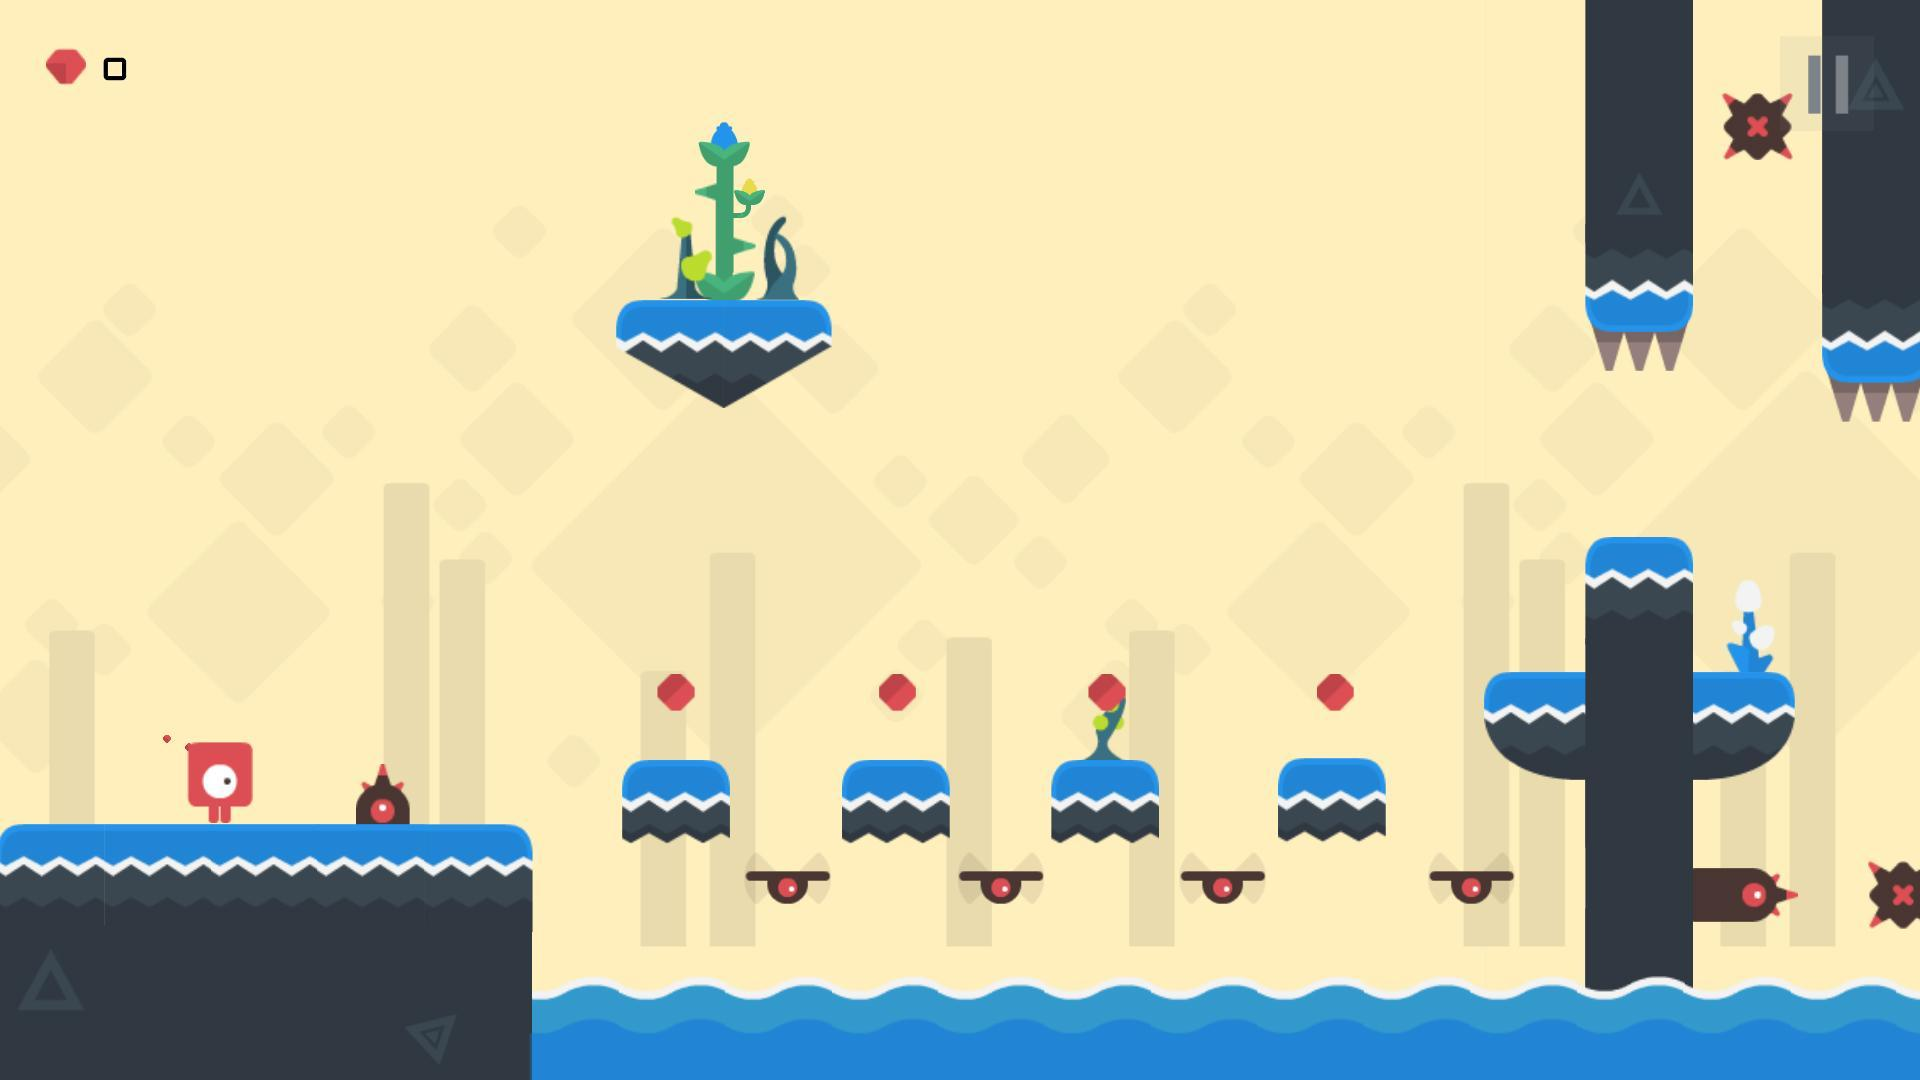 Suli Jumper for Android - APK Download